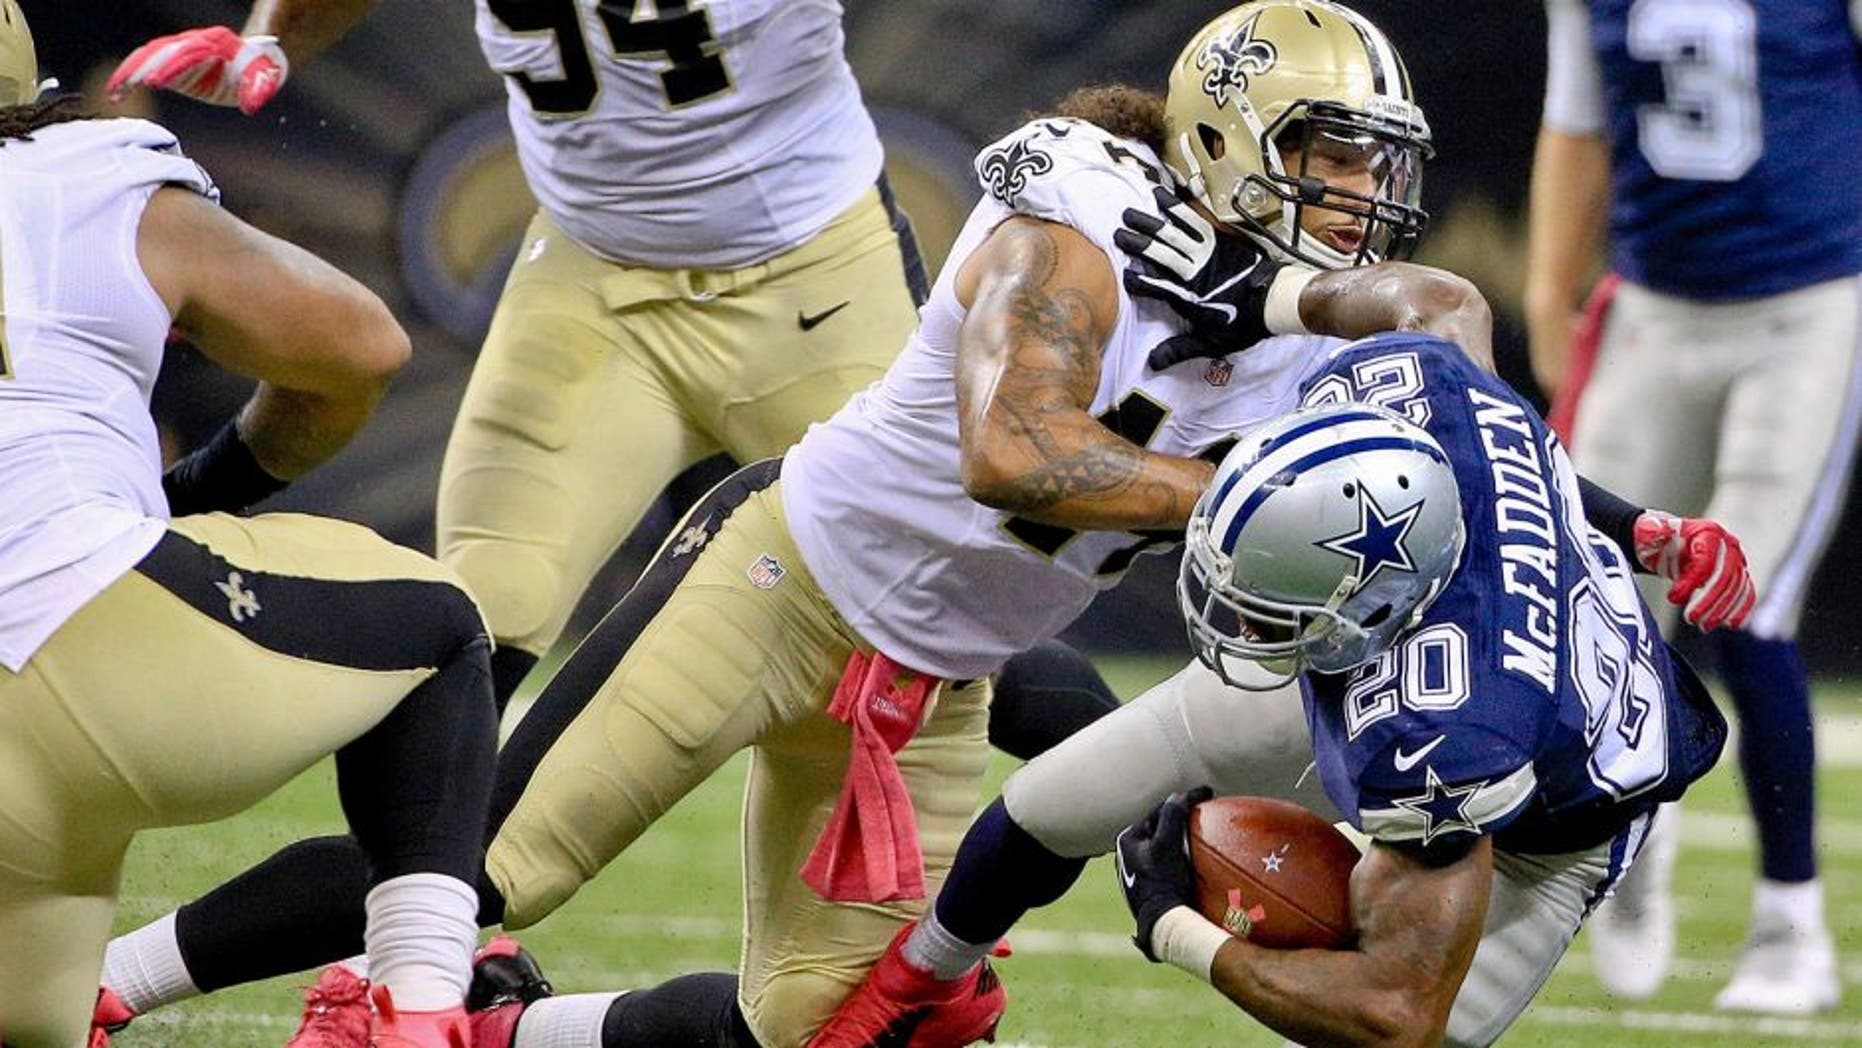 Oct 4, 2015; New Orleans, LA, USA; New Orleans Saints outside linebacker Hau'oli Kikaha (44) tackles Dallas Cowboys running back Darren McFadden (20) during the second half at the Mercedes-Benz Superdome. The Saints won 26-20 in overtime. Mandatory Credit: Derick E. Hingle-USA TODAY Sports